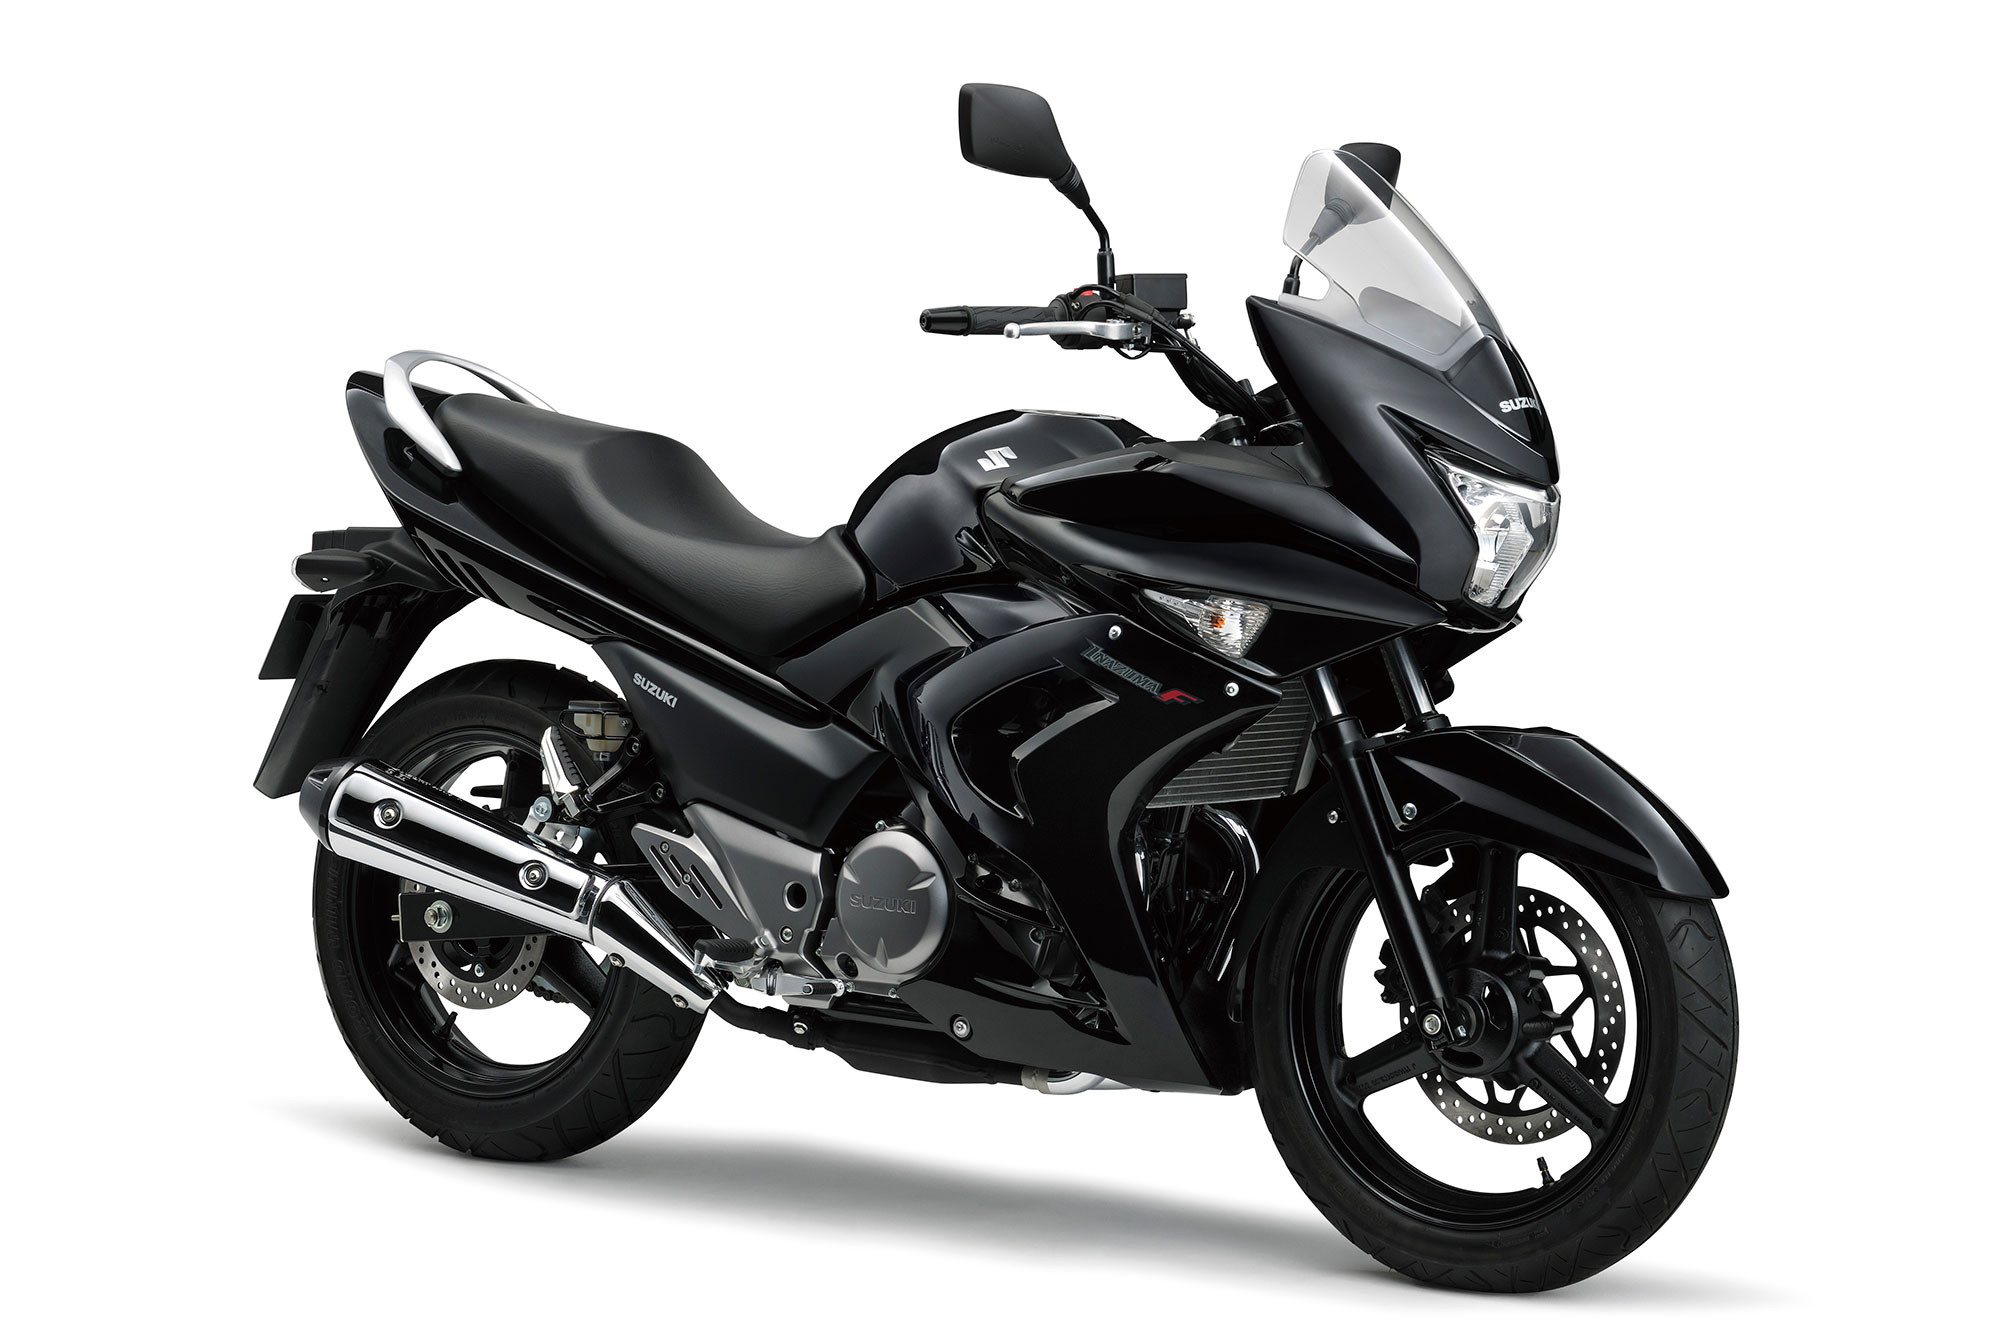 Top 10 A2 licence friendly bikes